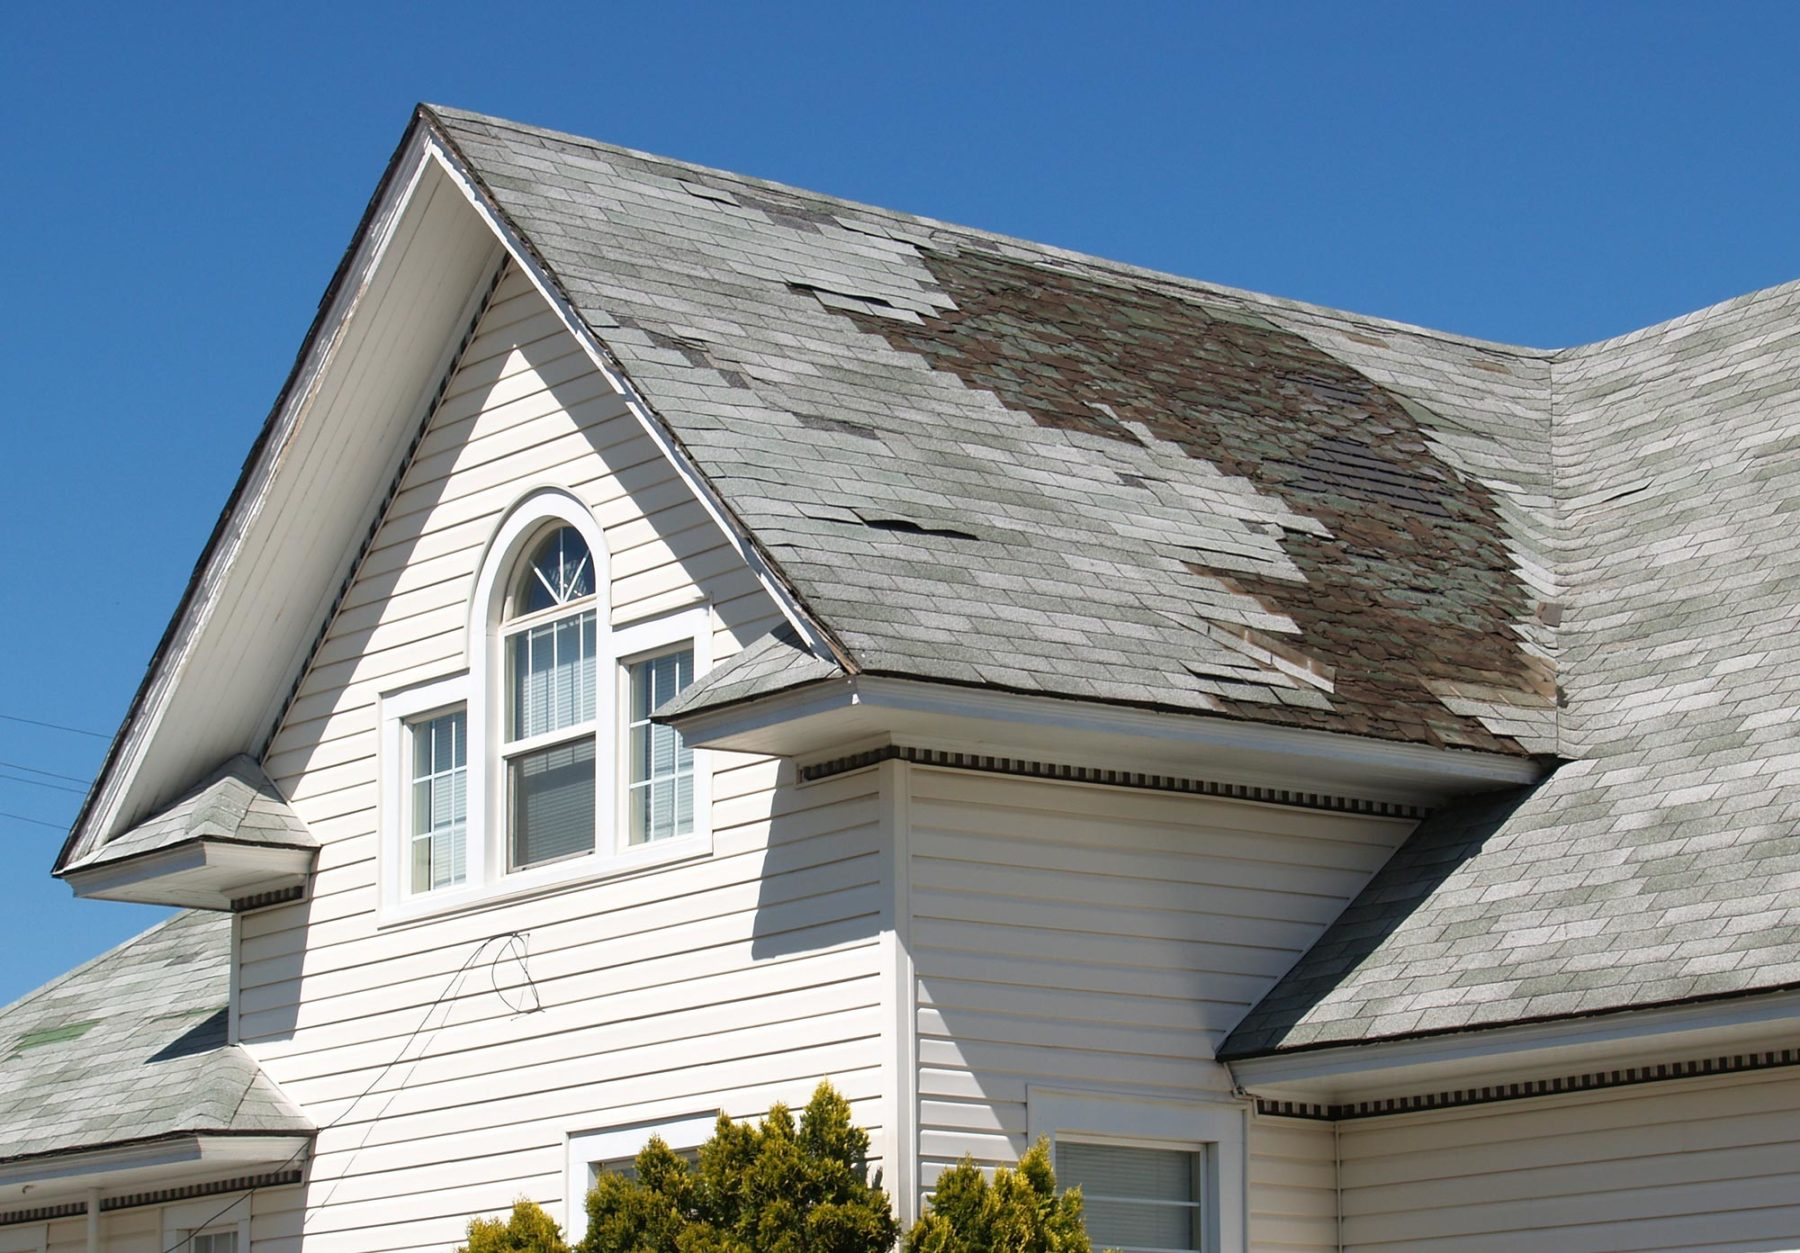 Hail Damage Claims Attorney Disaster Insurance Claims